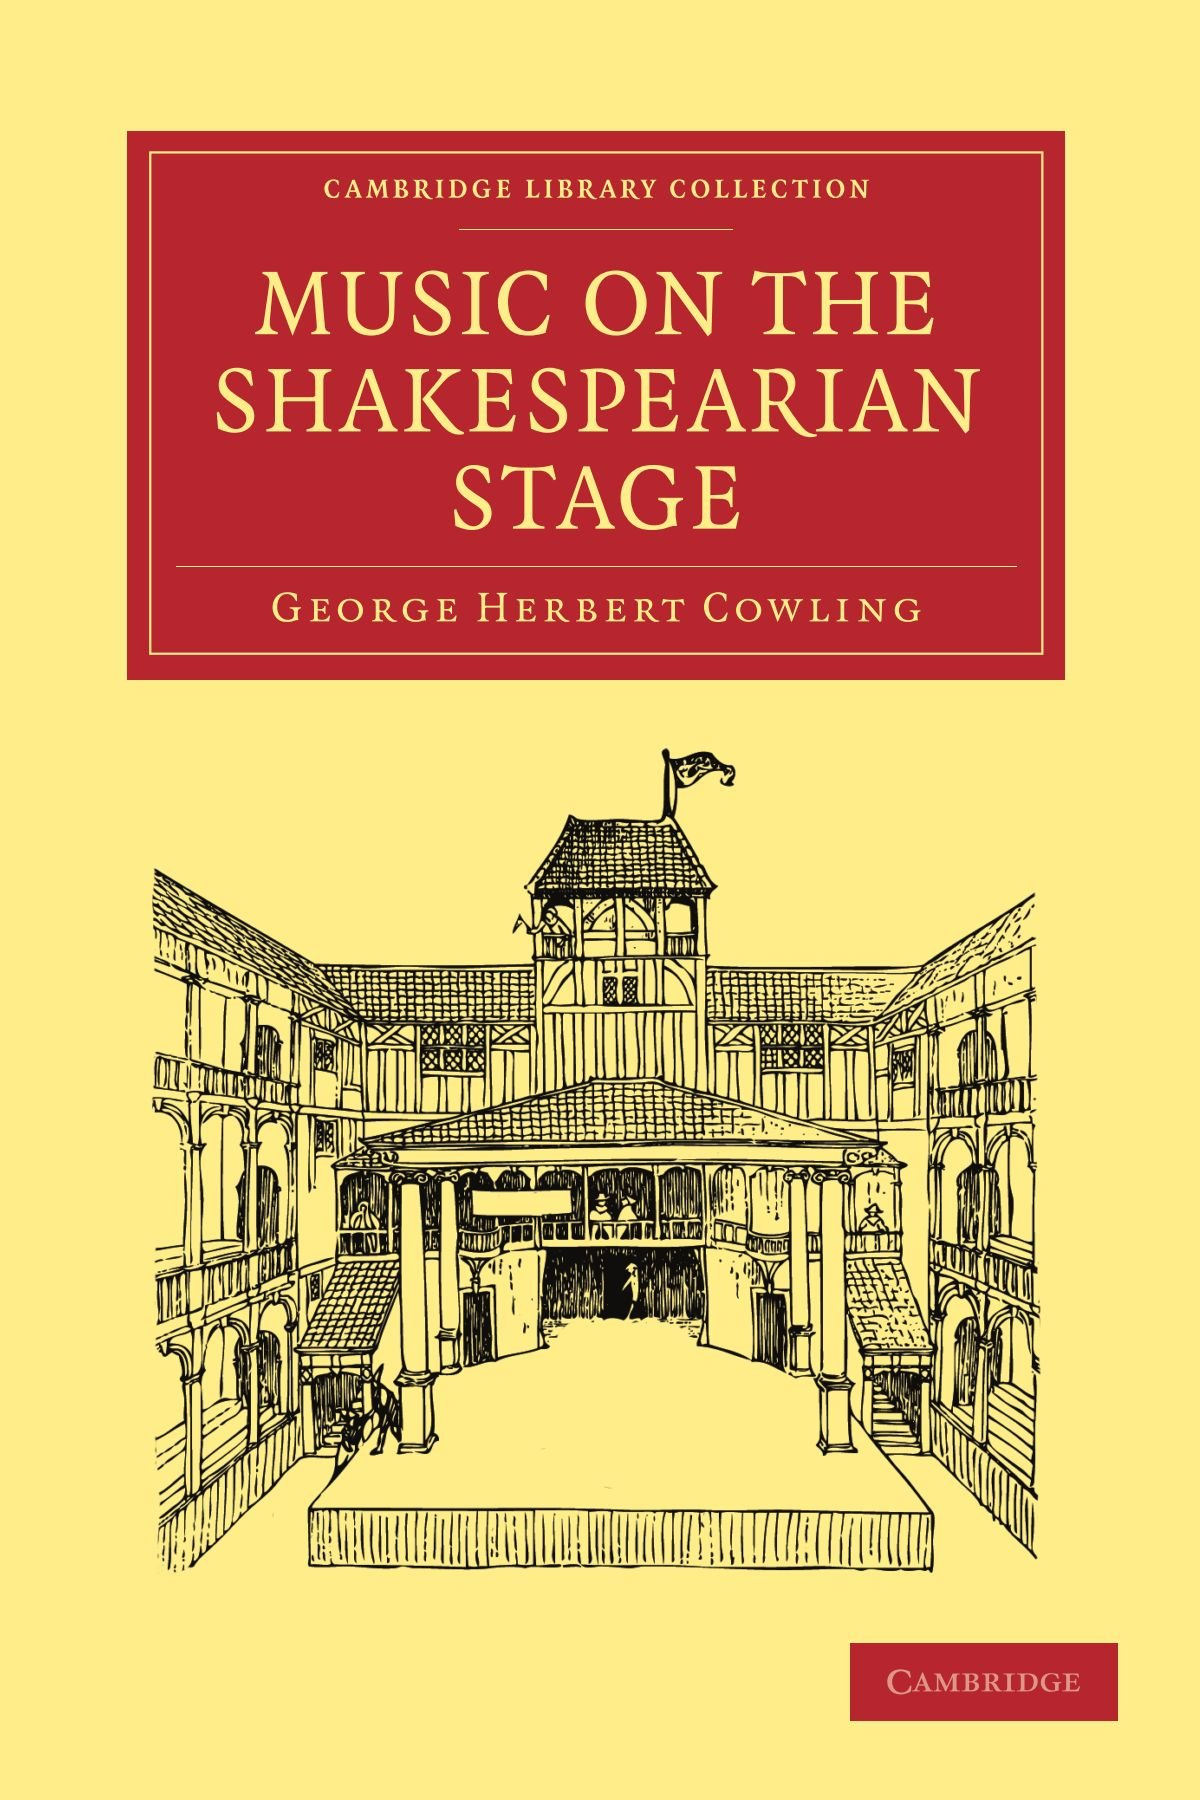 Music on the Shakespearian Stage